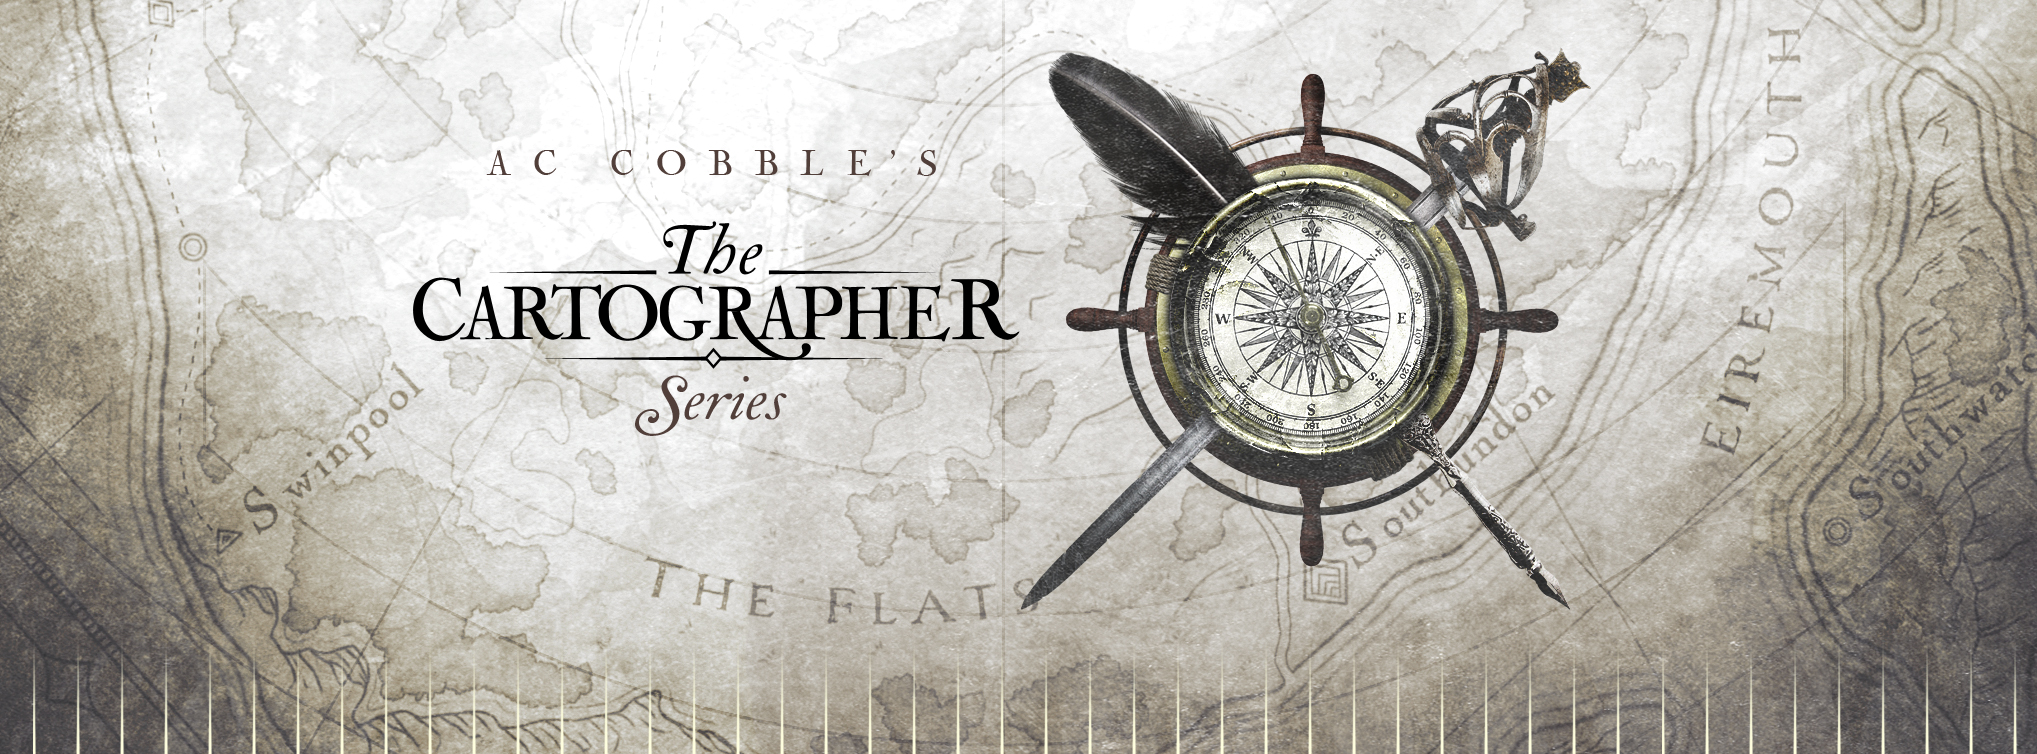 Cartographer-FB_Header2.jpg